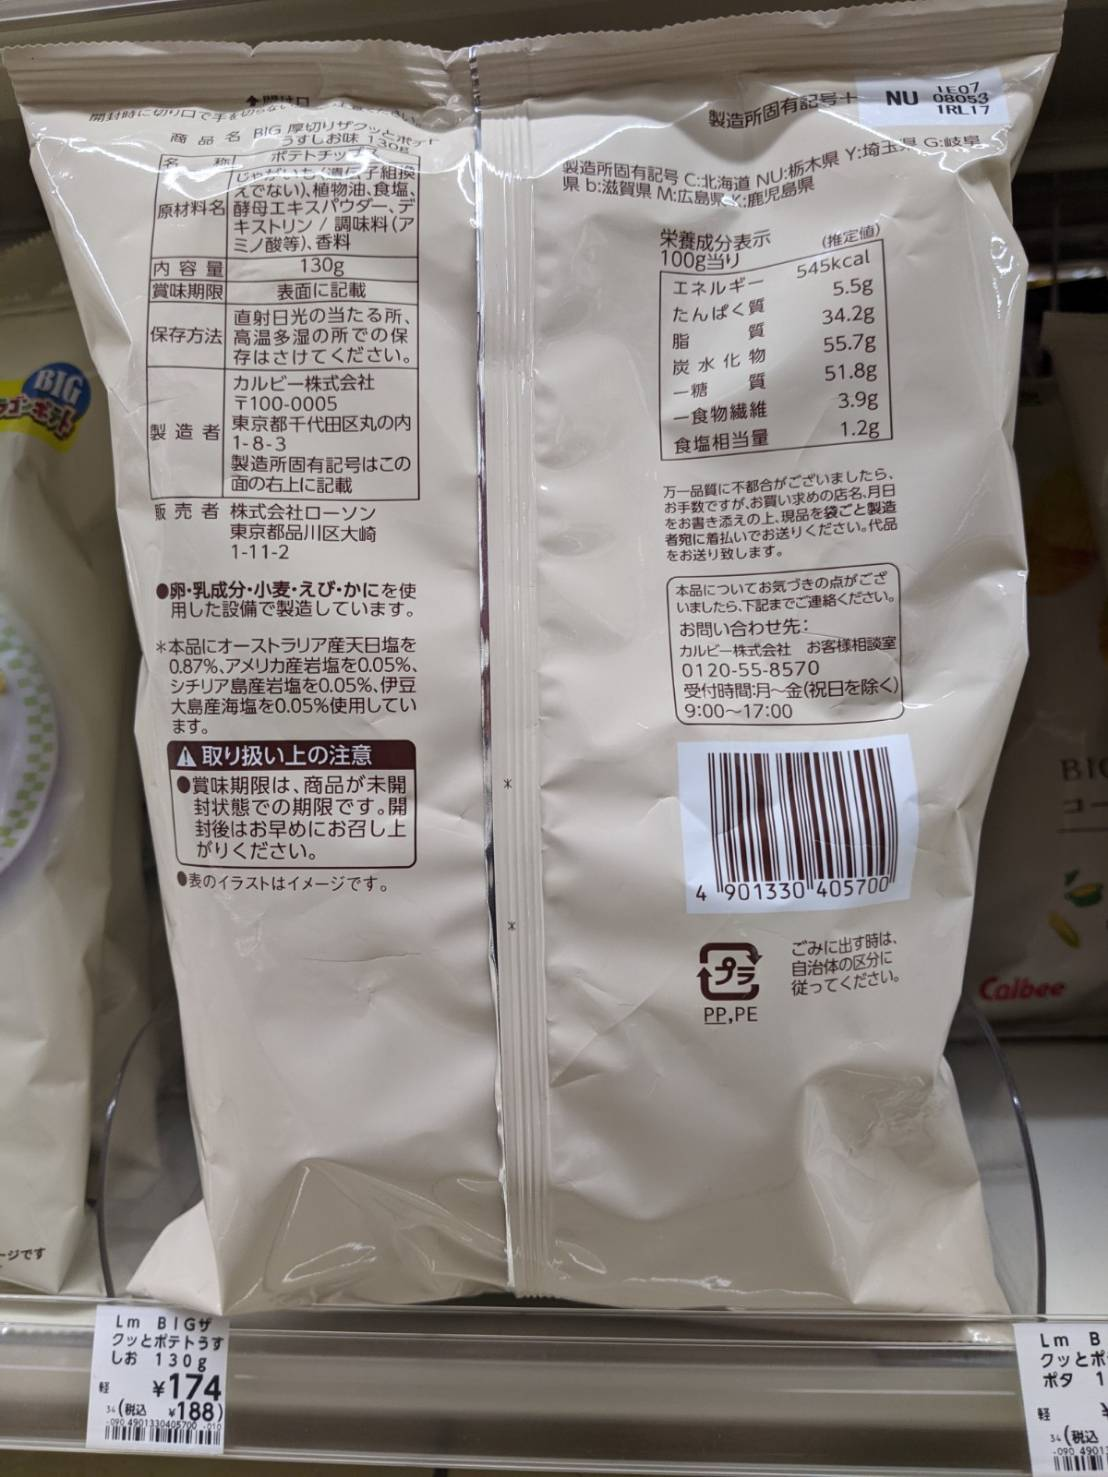 Lawson Calbee Potato Chips Lightly Salted Flavor back of package